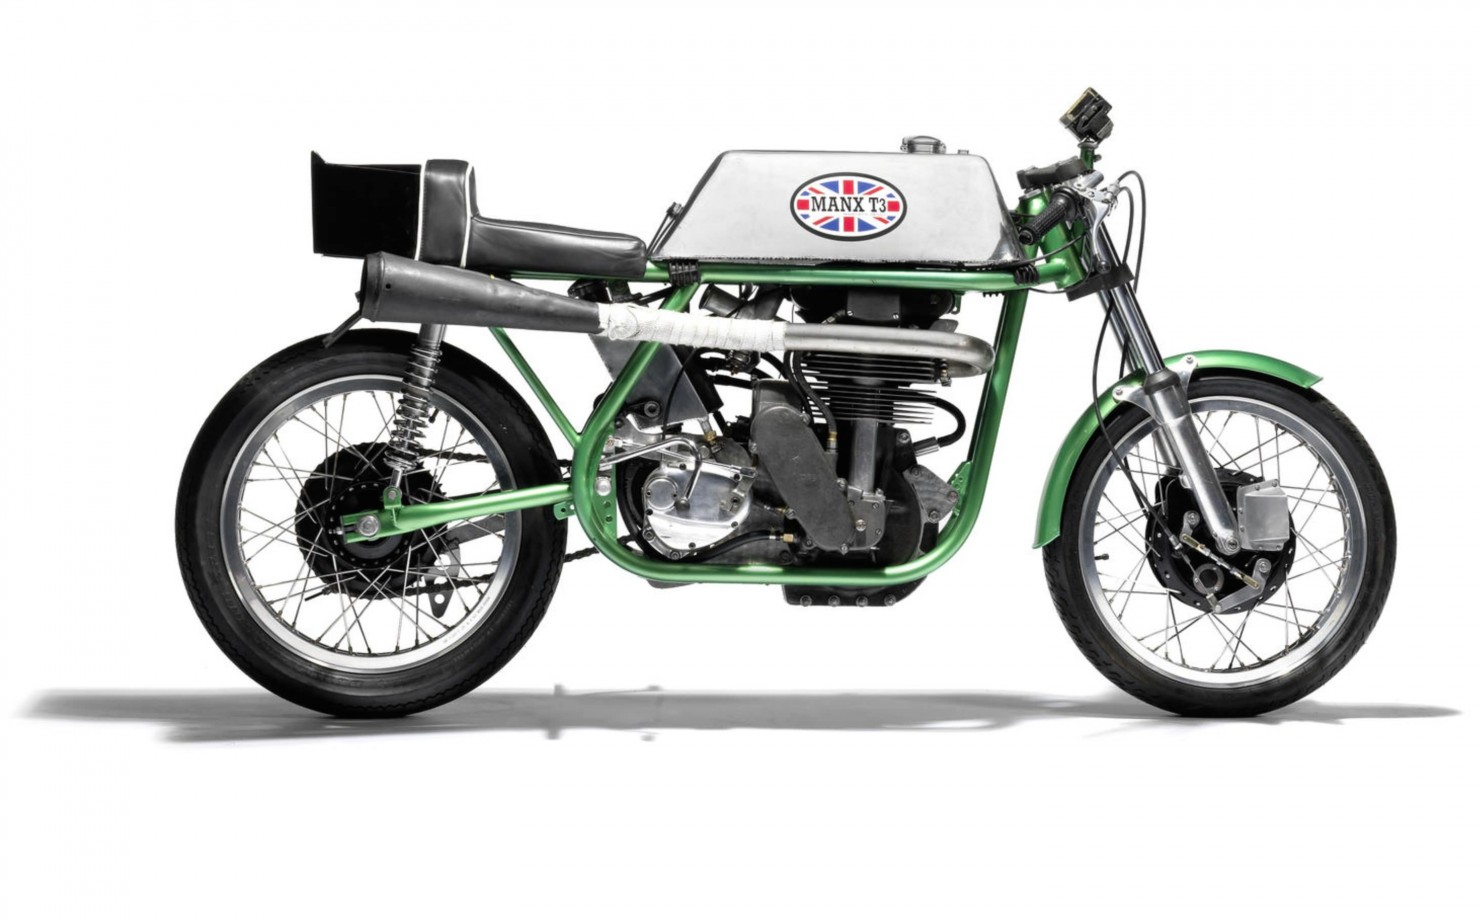 Tickle Manx Motorcycle